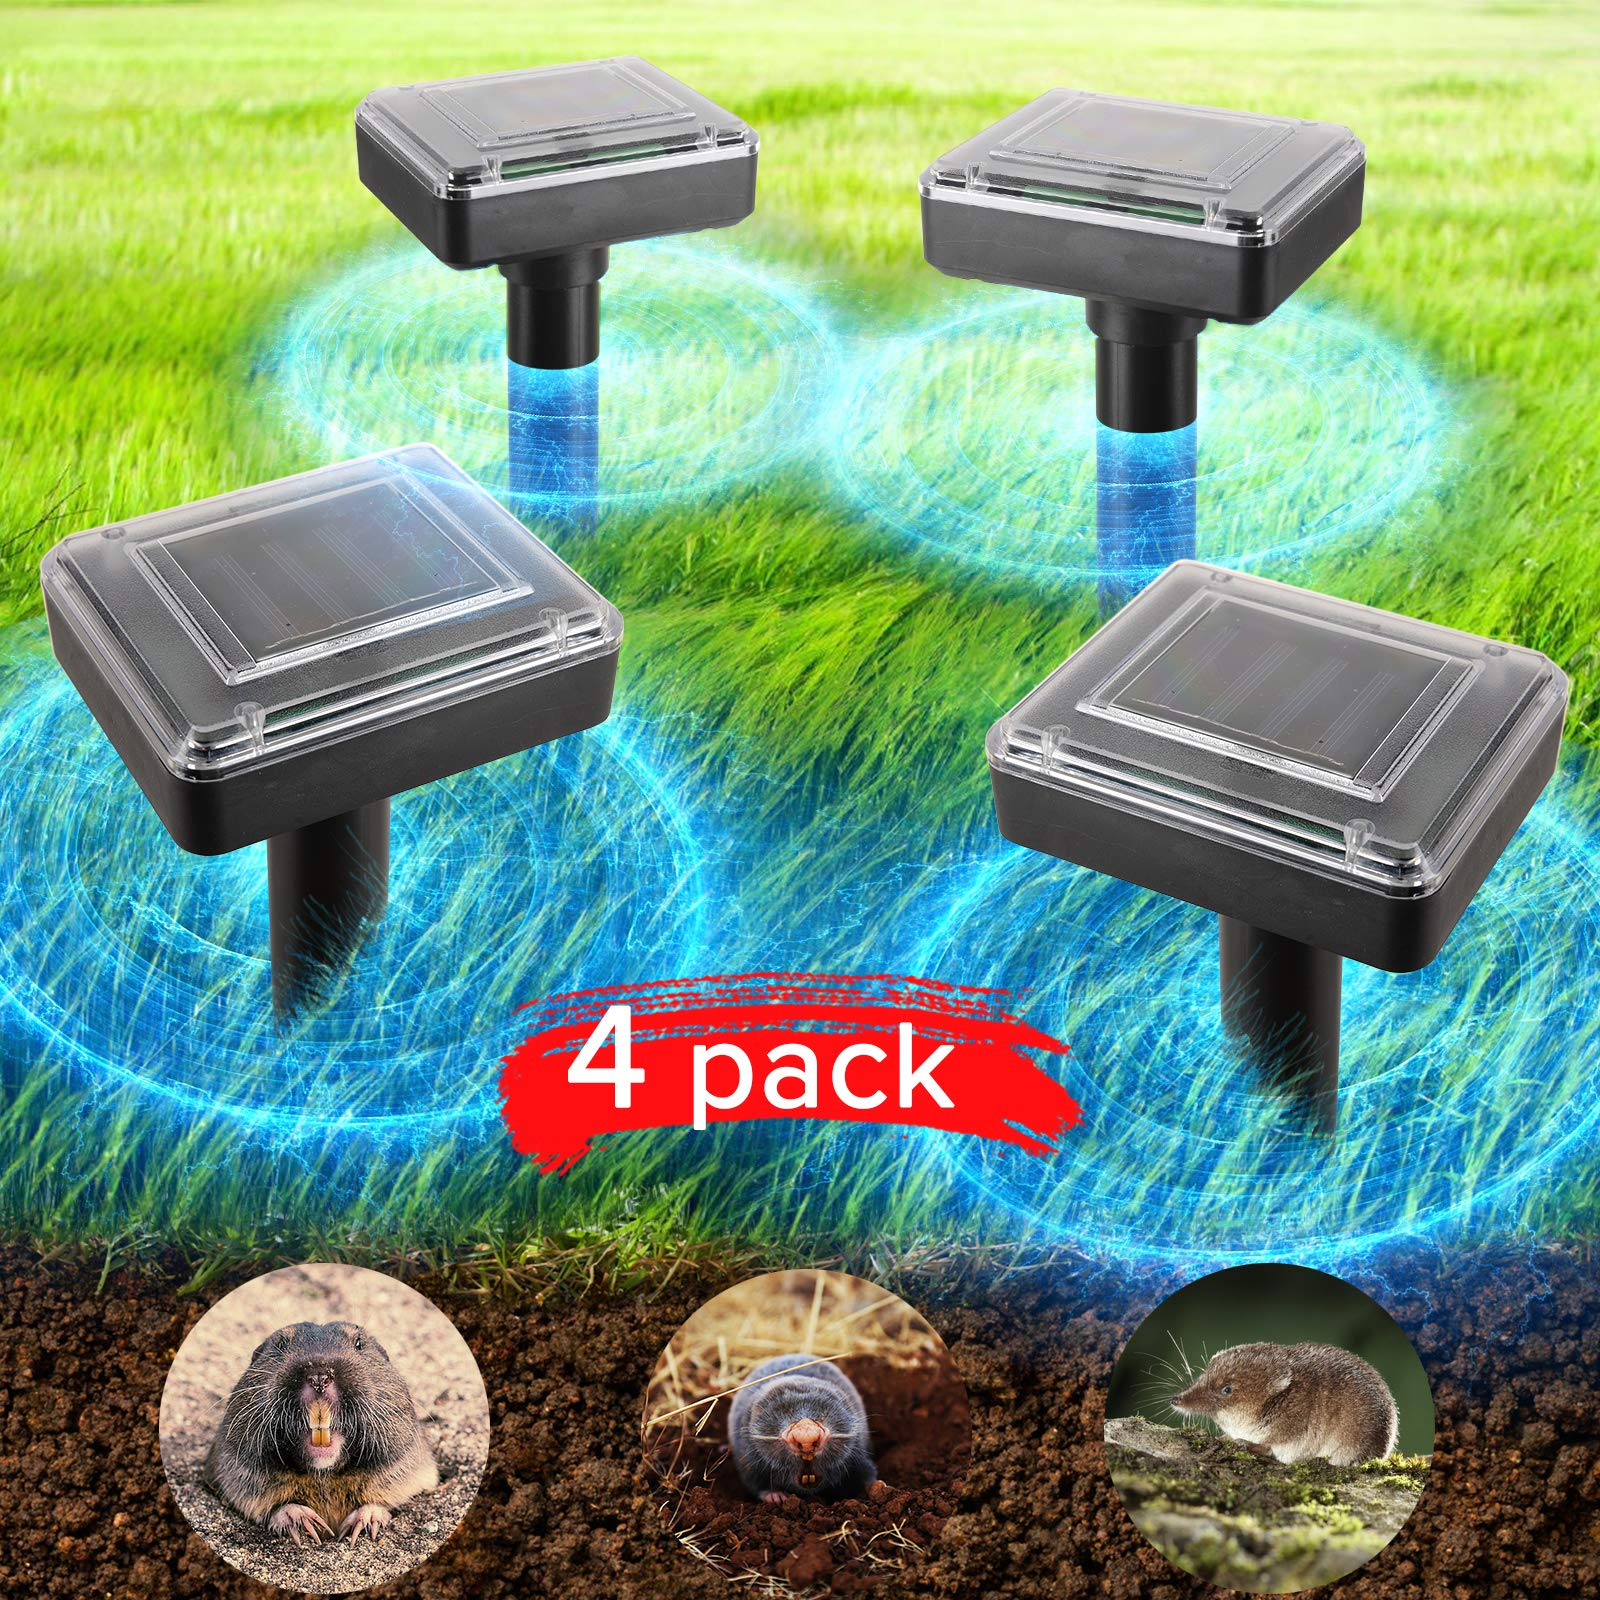 JIA LE Upgrade Mole Repellent, 4 Pack Ultrasonic Animal Repellent Solar Powered Gopher and Vole Chaser Humane Rodent Repeller (Black) by JIA LE